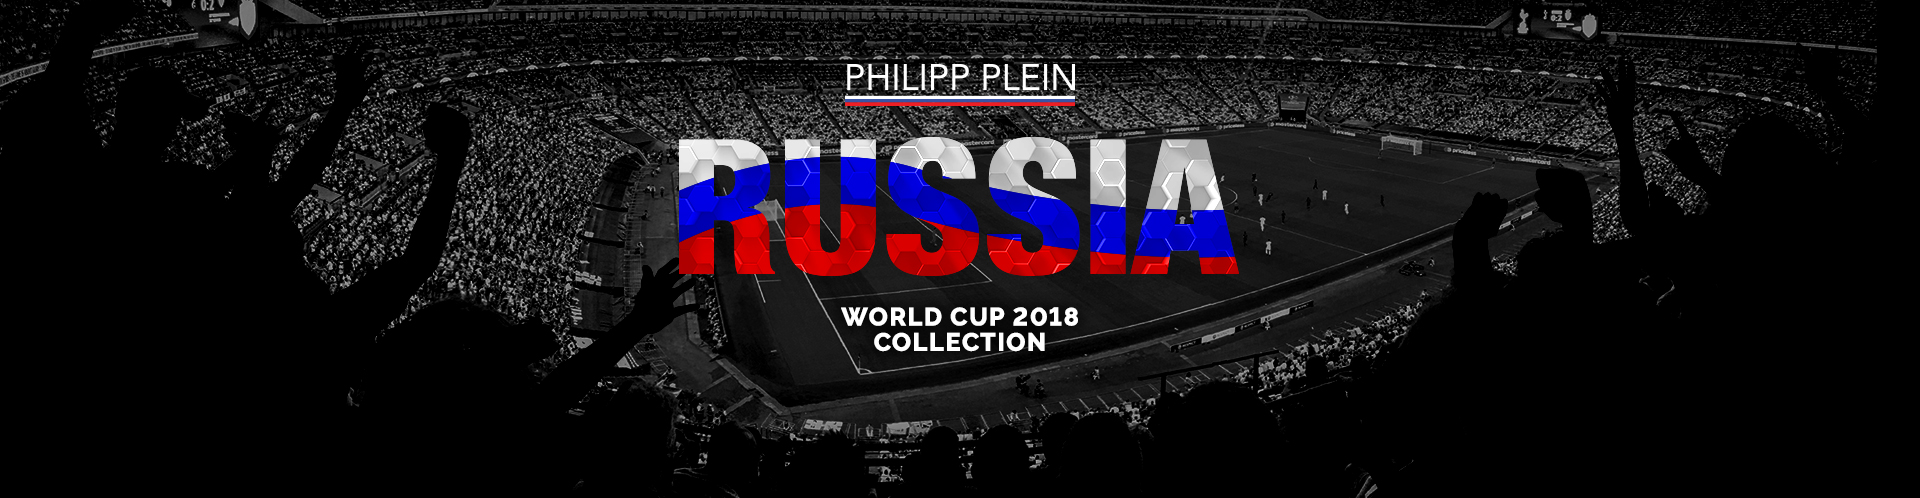 banner world cup